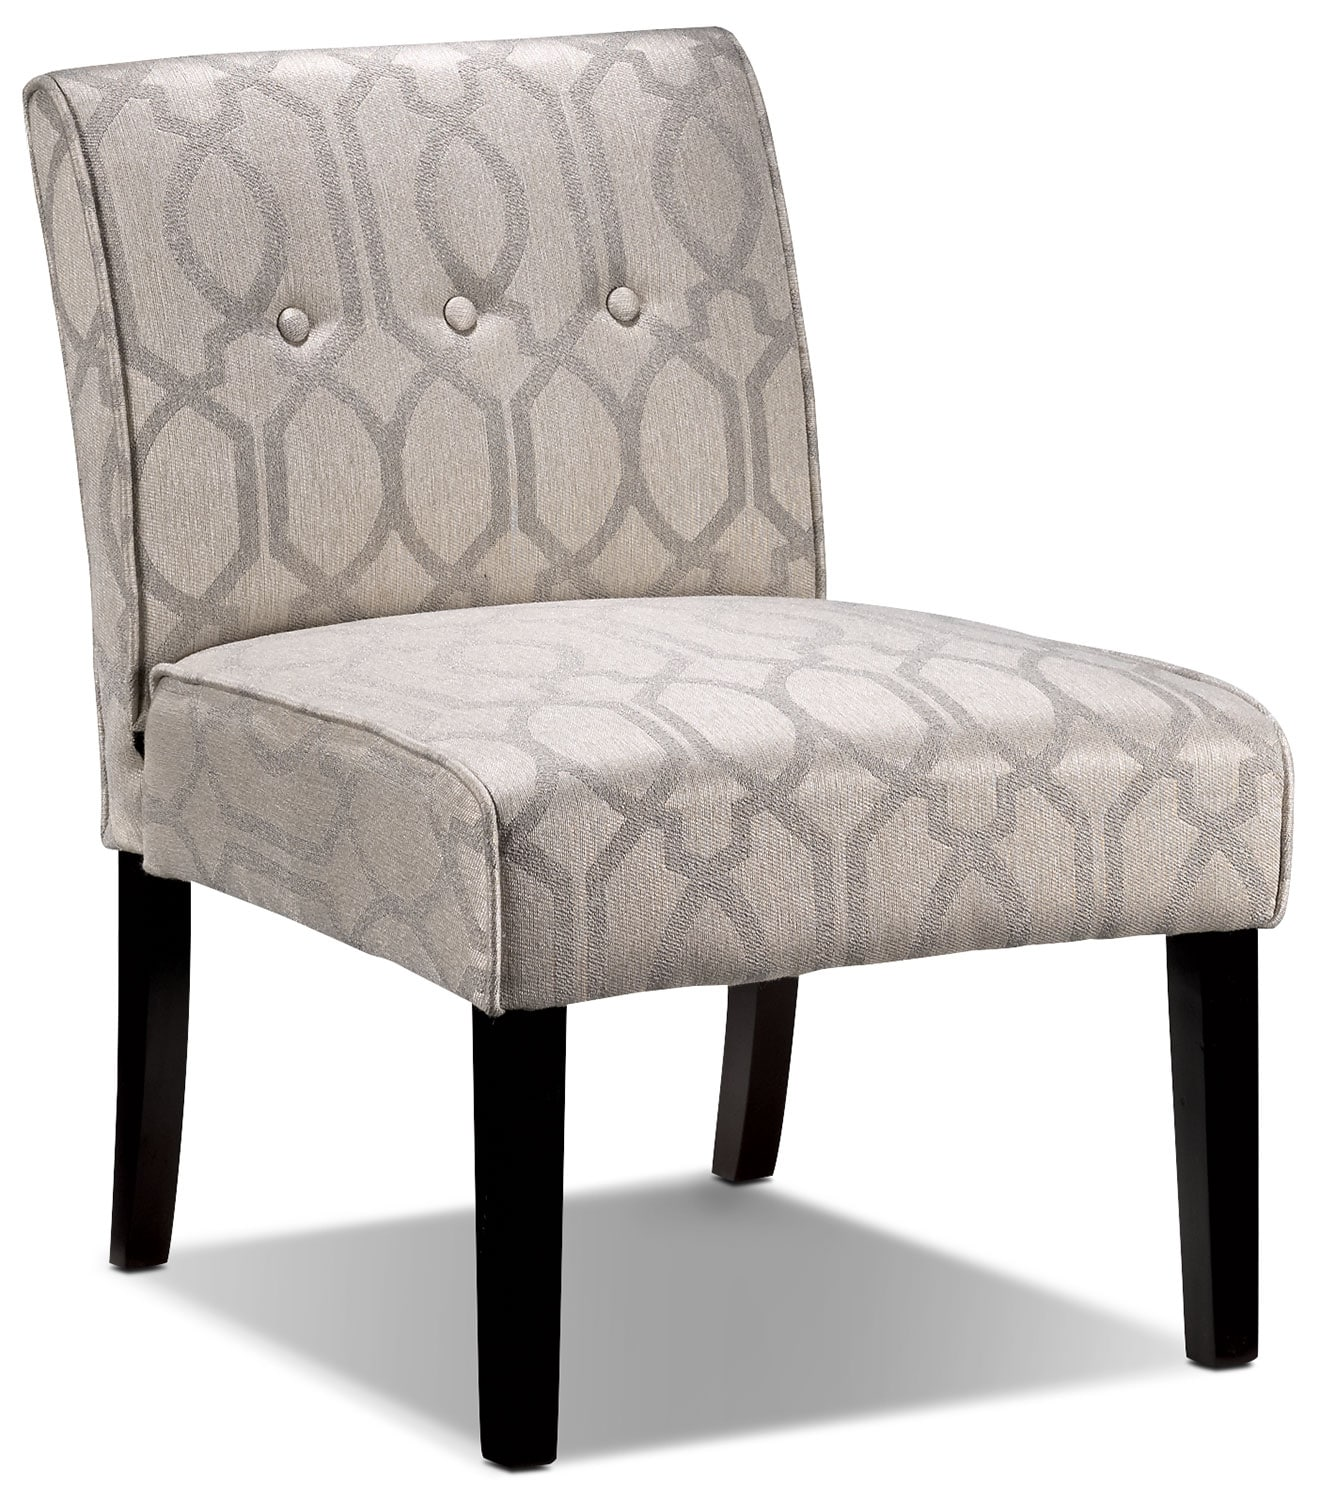 Candace Accent Chair - Beige